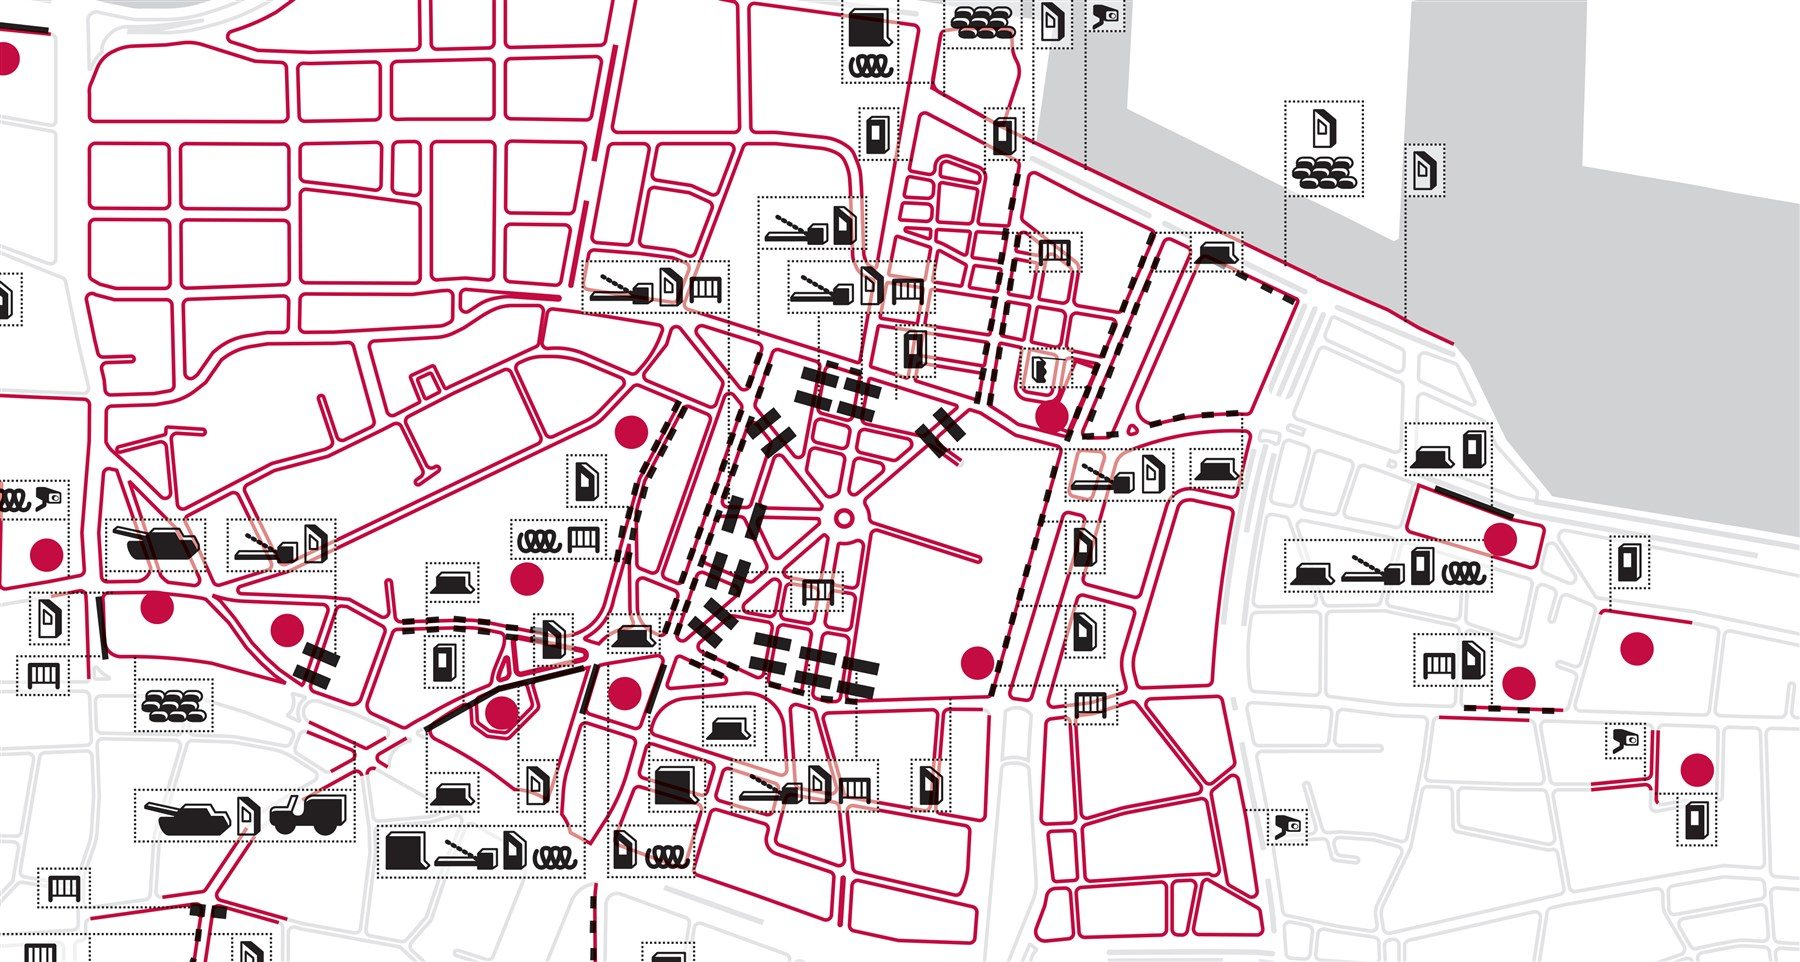 Mapping Security in Beirut: A Decade of Research